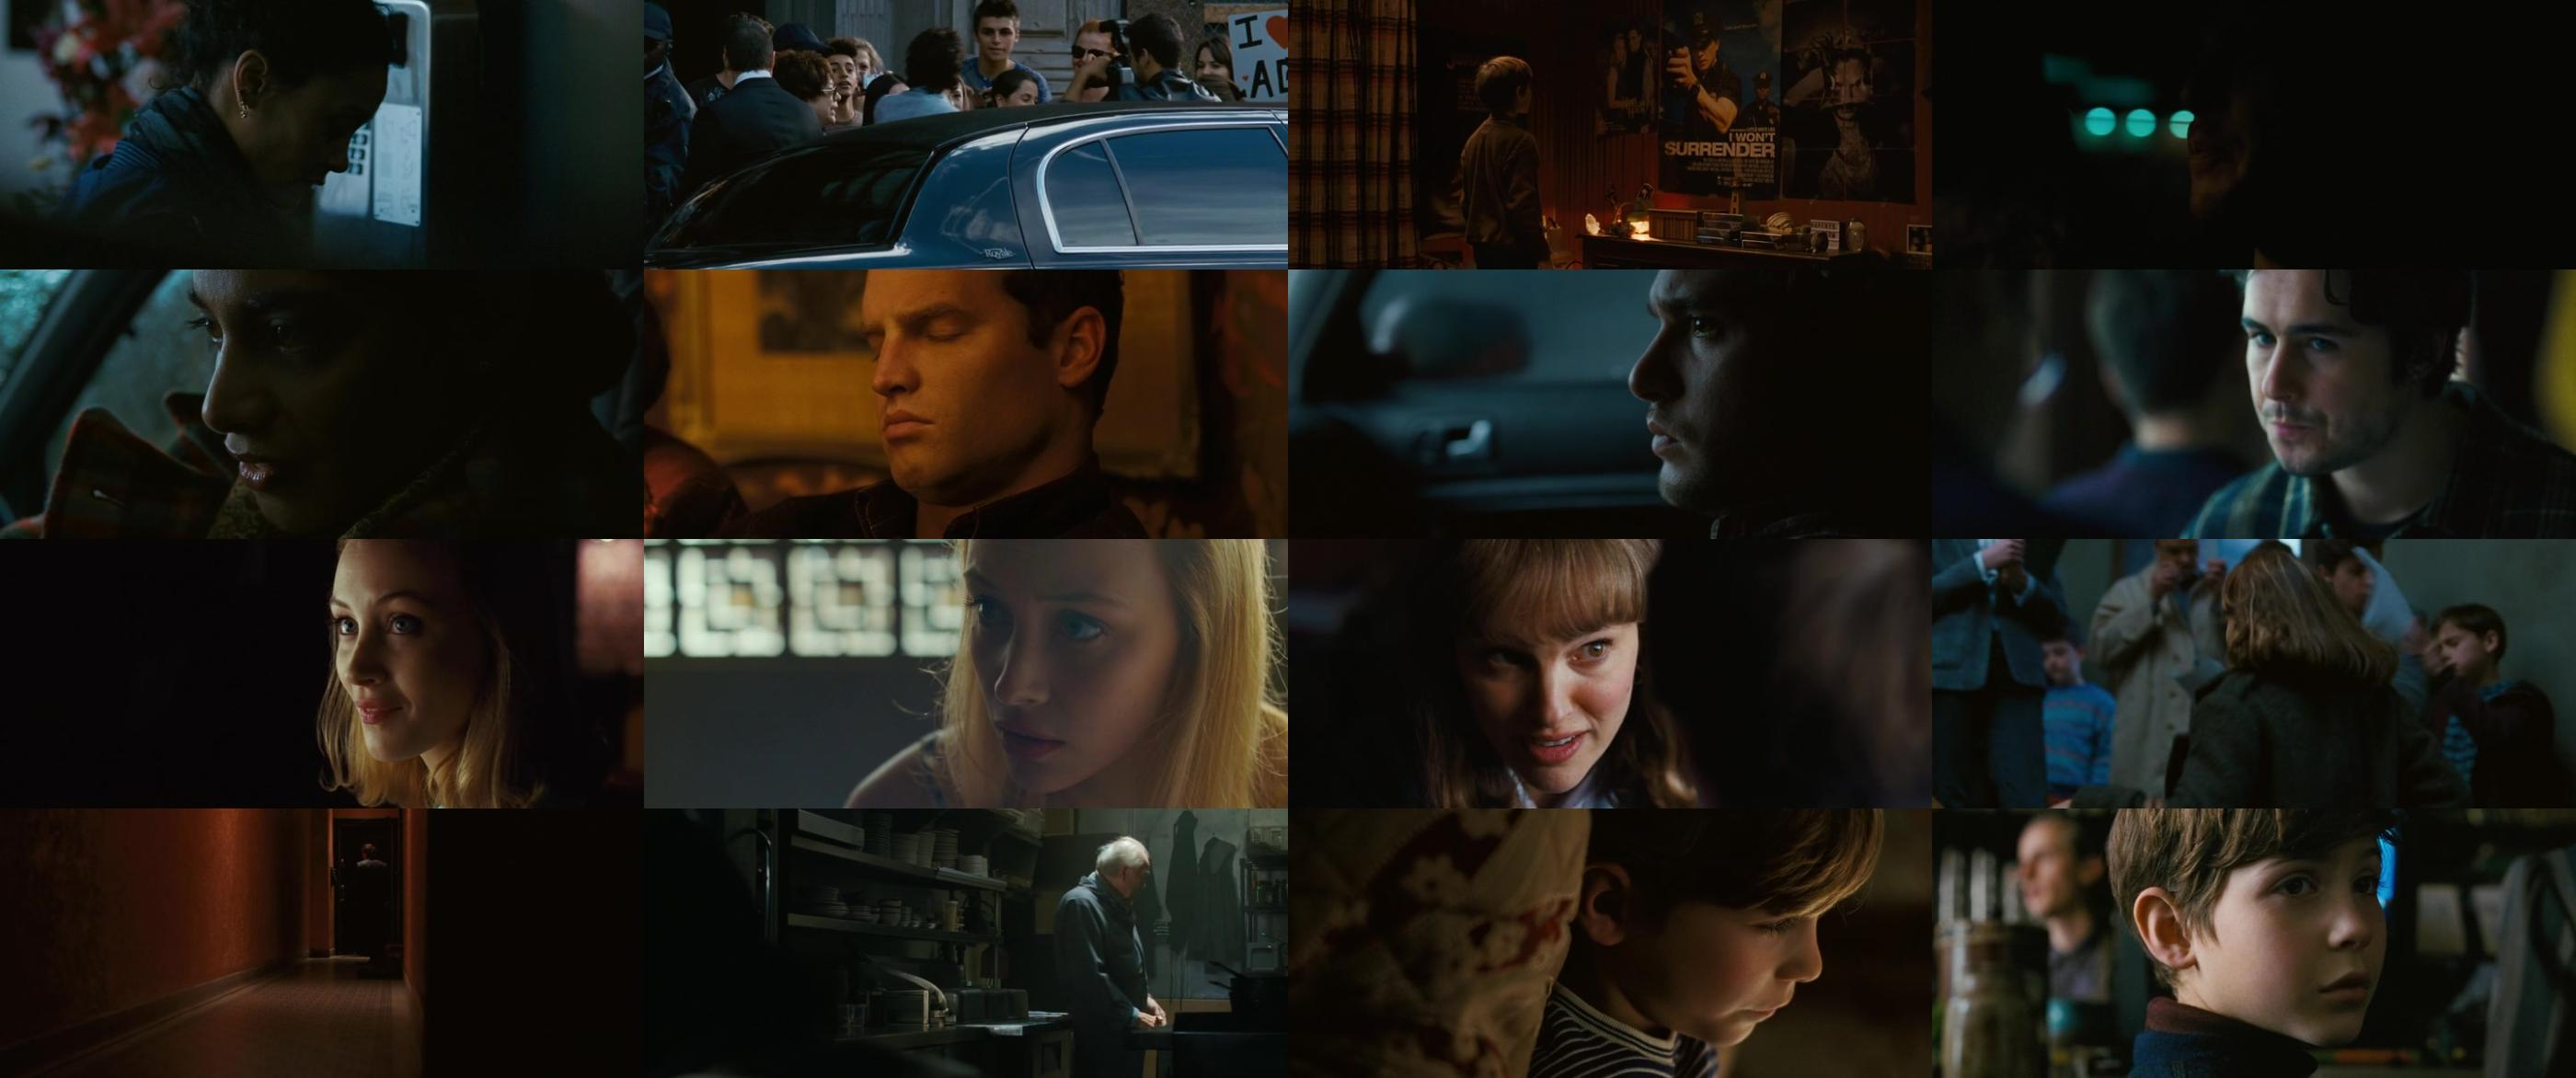 The Death And Life of John F Donovan 2018 WEB-DL x264-FGT